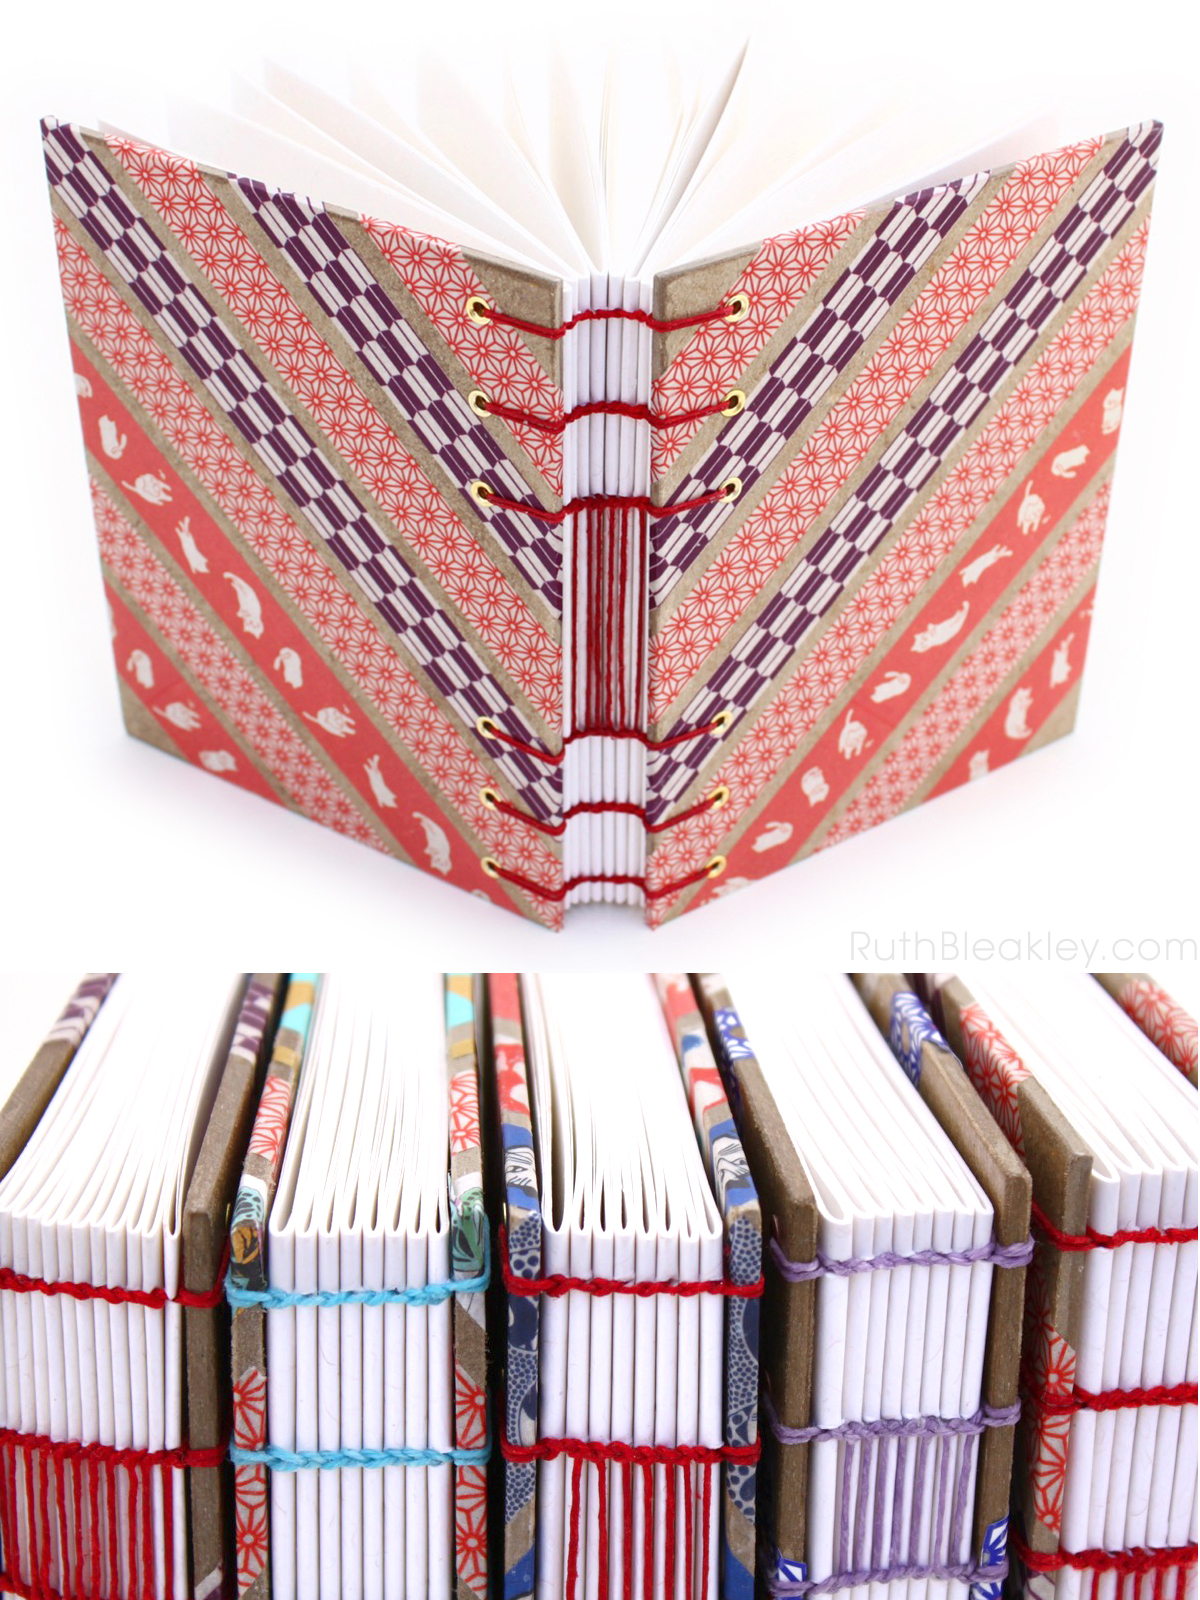 Red and Purple Geometric Washi Tape Journal handmade by Ruth Bleakley - 6